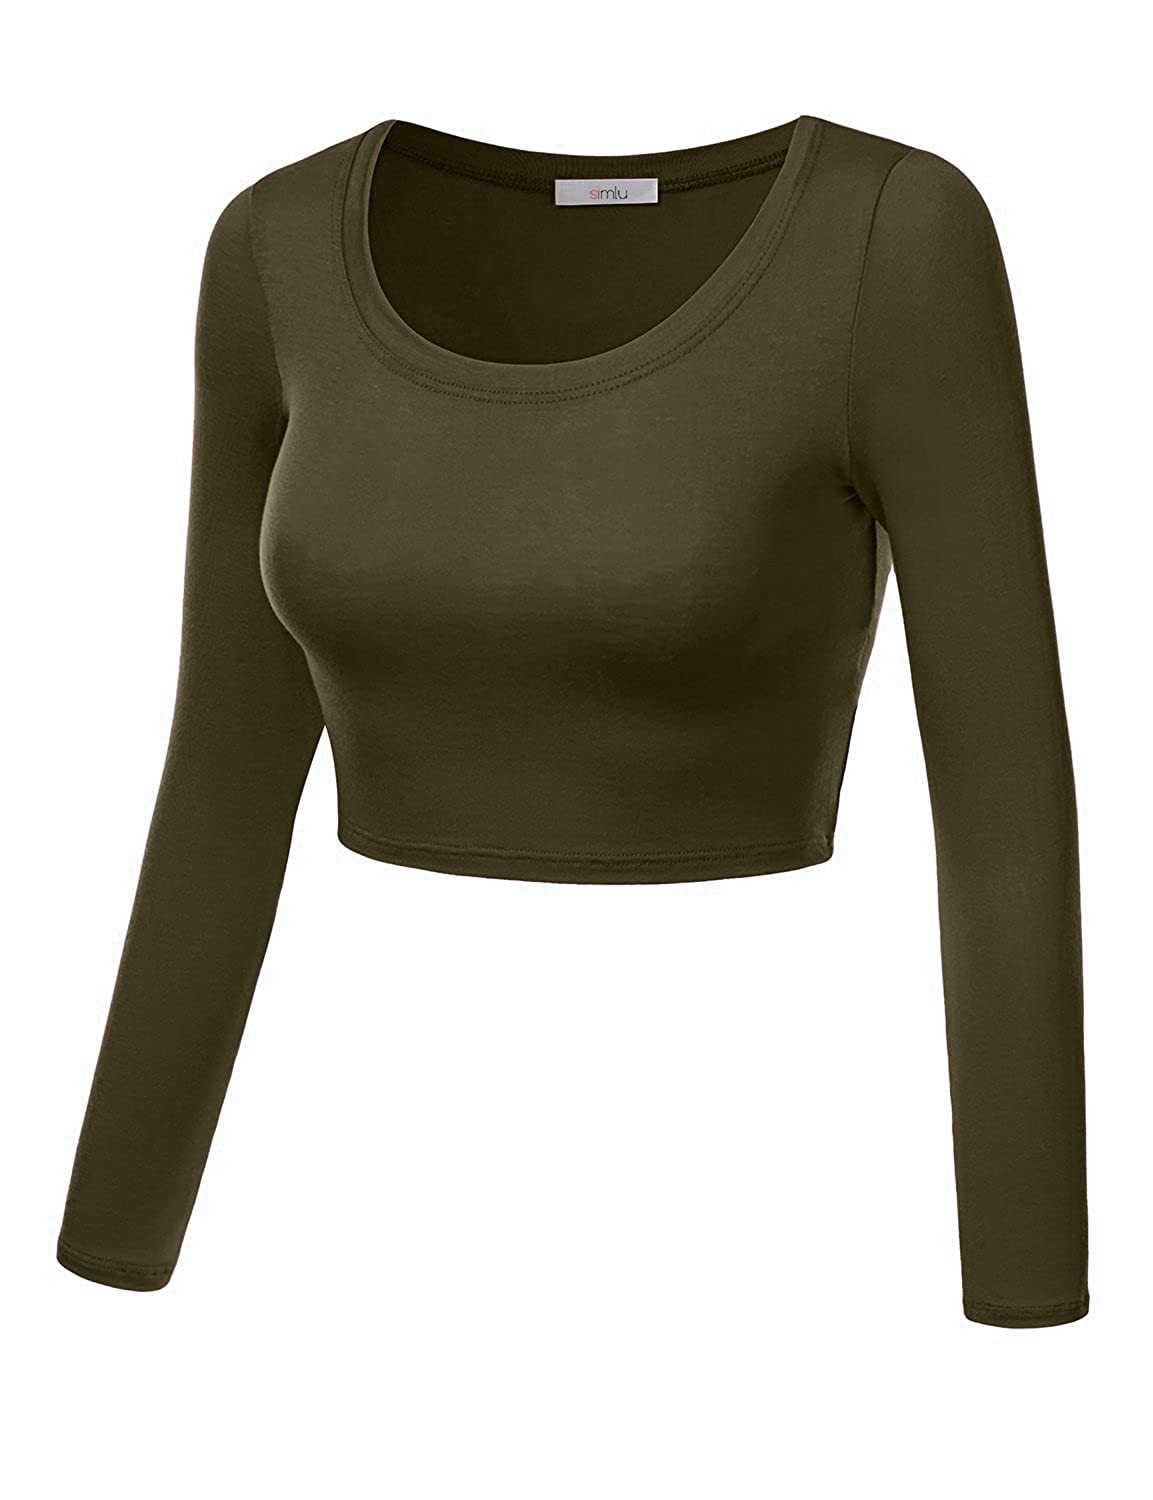 f6ff992ce3228c Simlu Womens Crop Top Round Neck Basic Long Sleeve Crop Top with Stretch  Reg and Plus Size - USA (Size Large